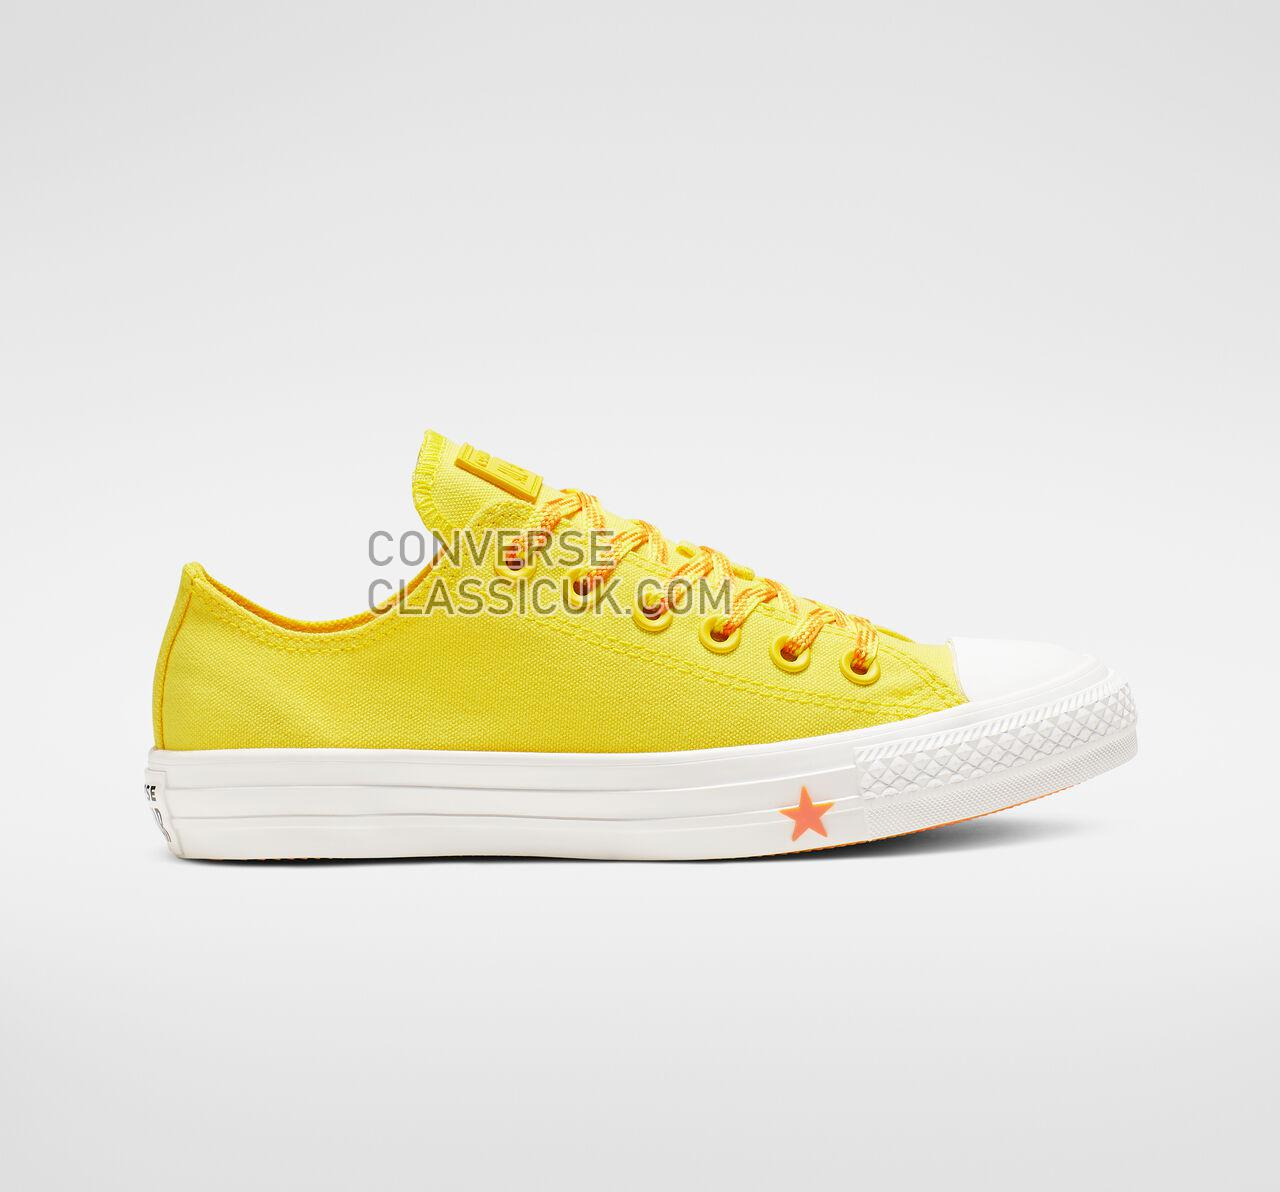 Converse Chuck Taylor All Star Glow Up Low Top Womens 564116C Fresh Yellow/Orange Rind/White Shoes